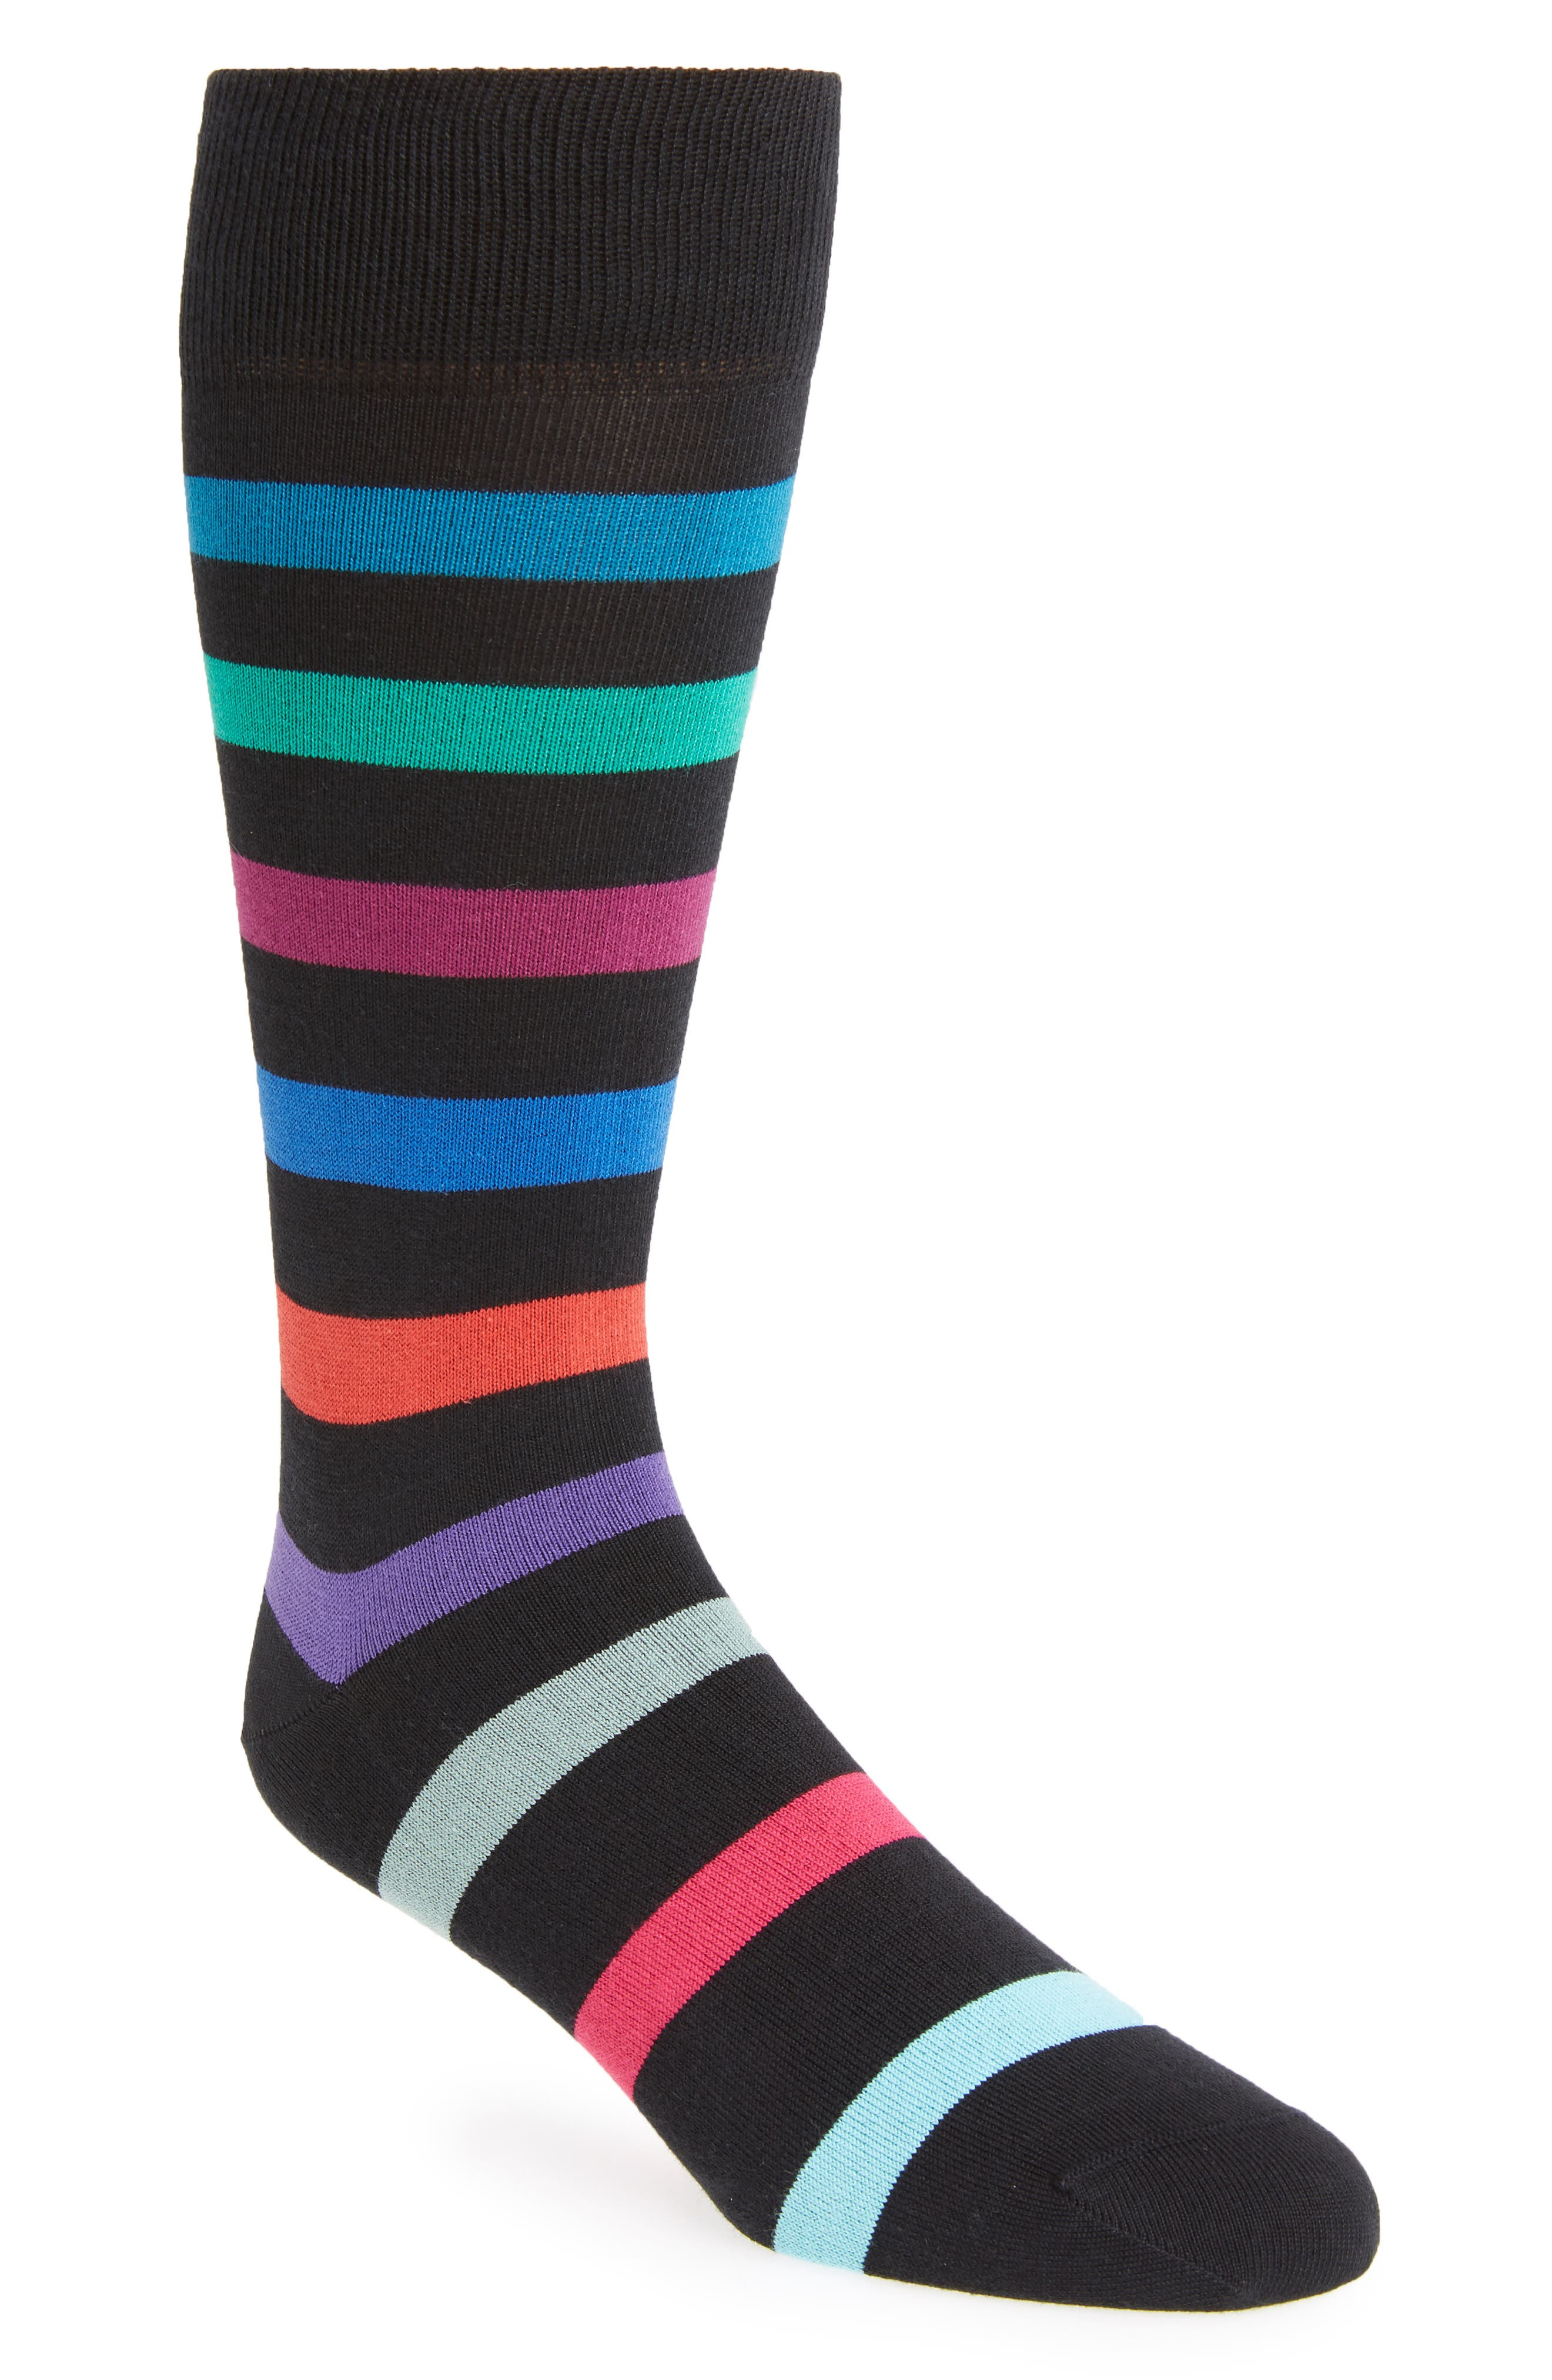 Look Stripe Socks,                             Main thumbnail 1, color,                             BLACK